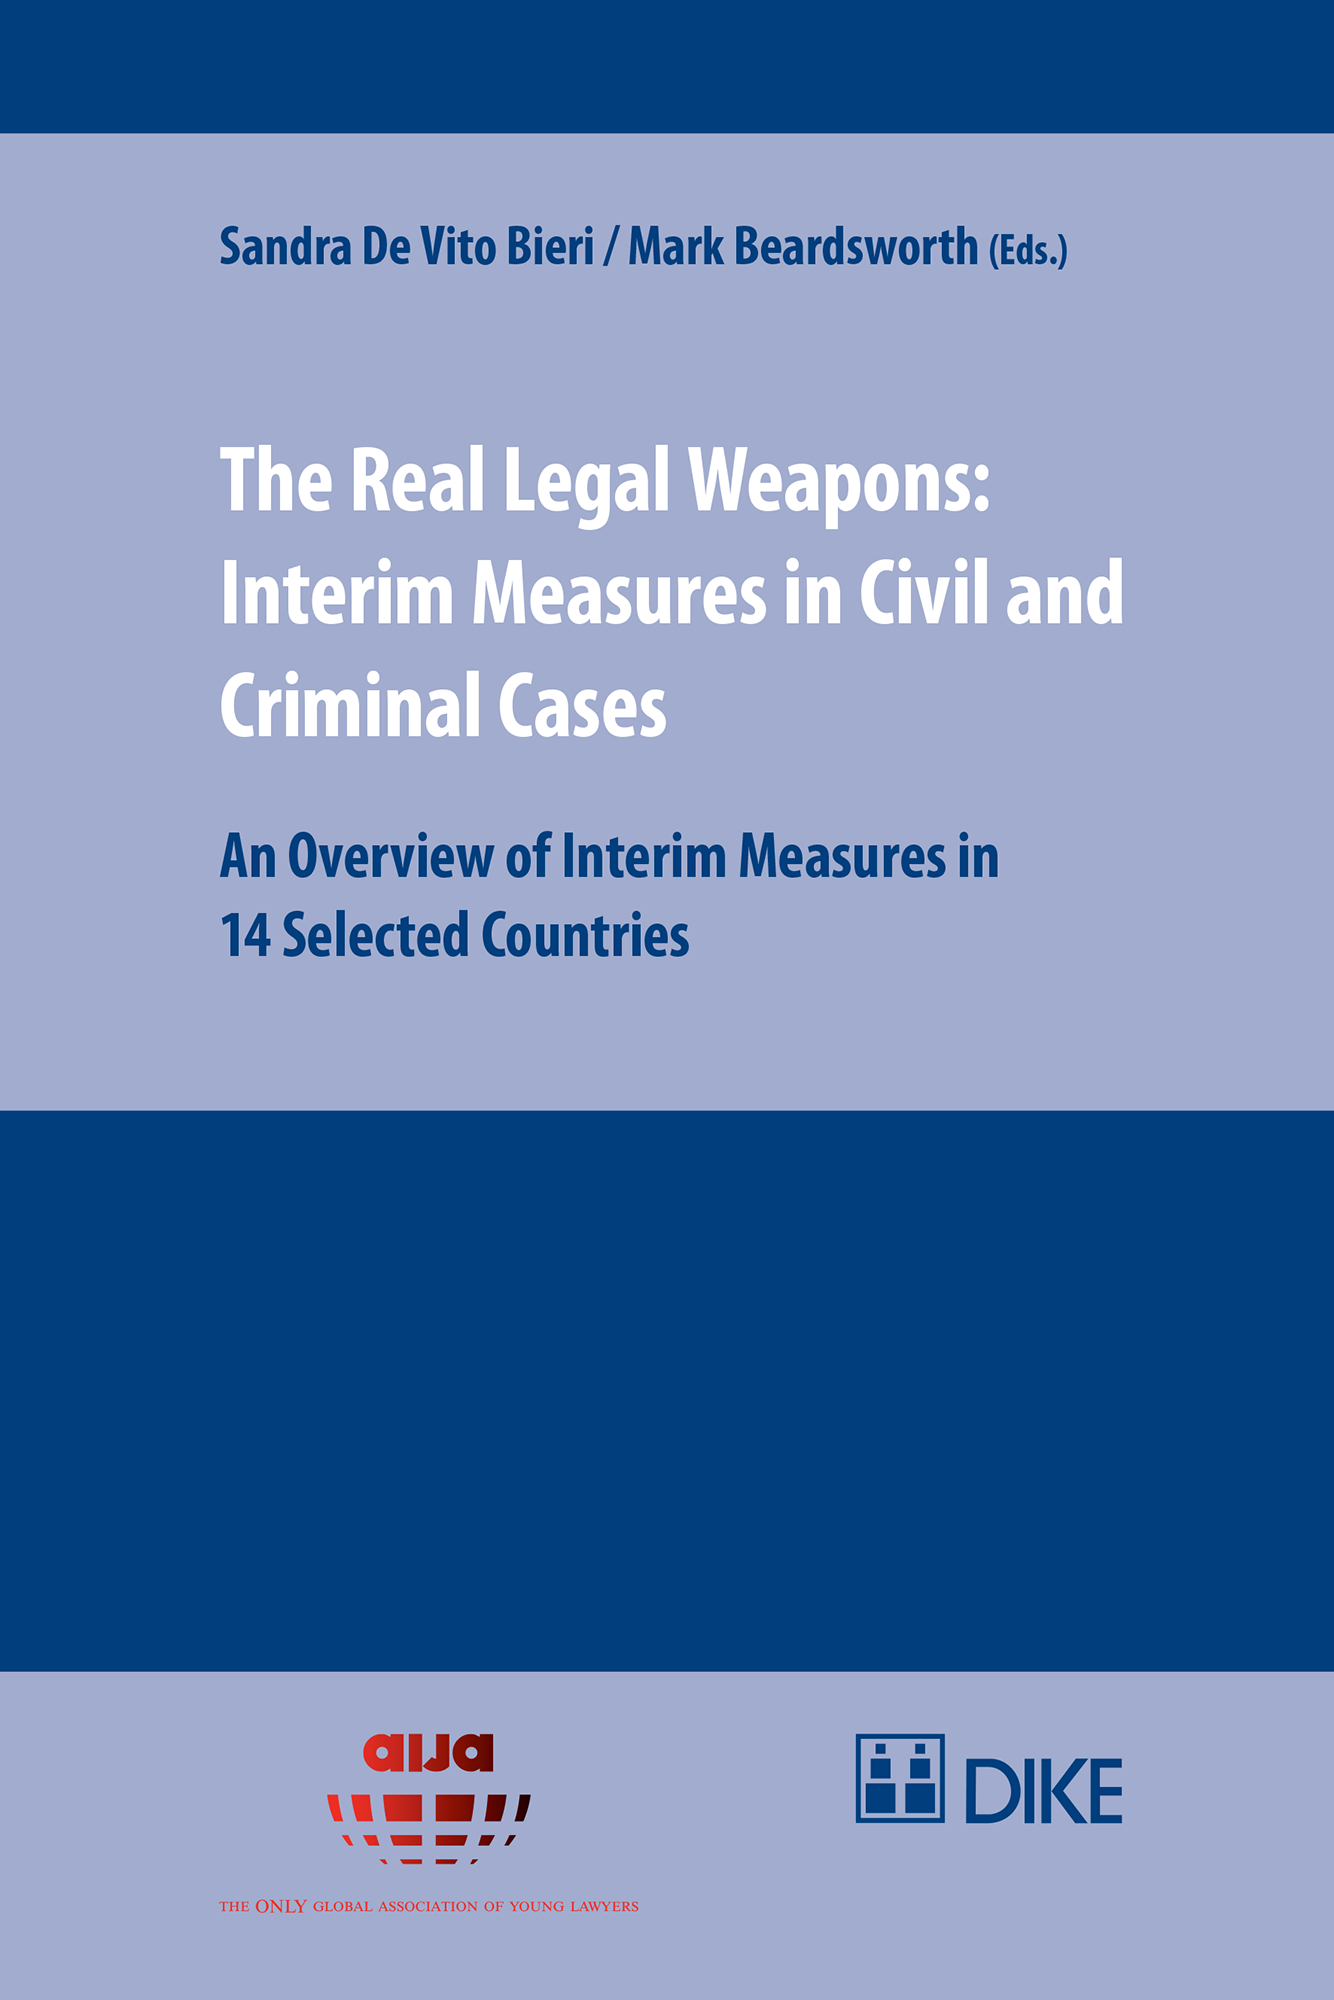 The Real Legal Weapons: Interim Measures in Civil and Criminal Cases